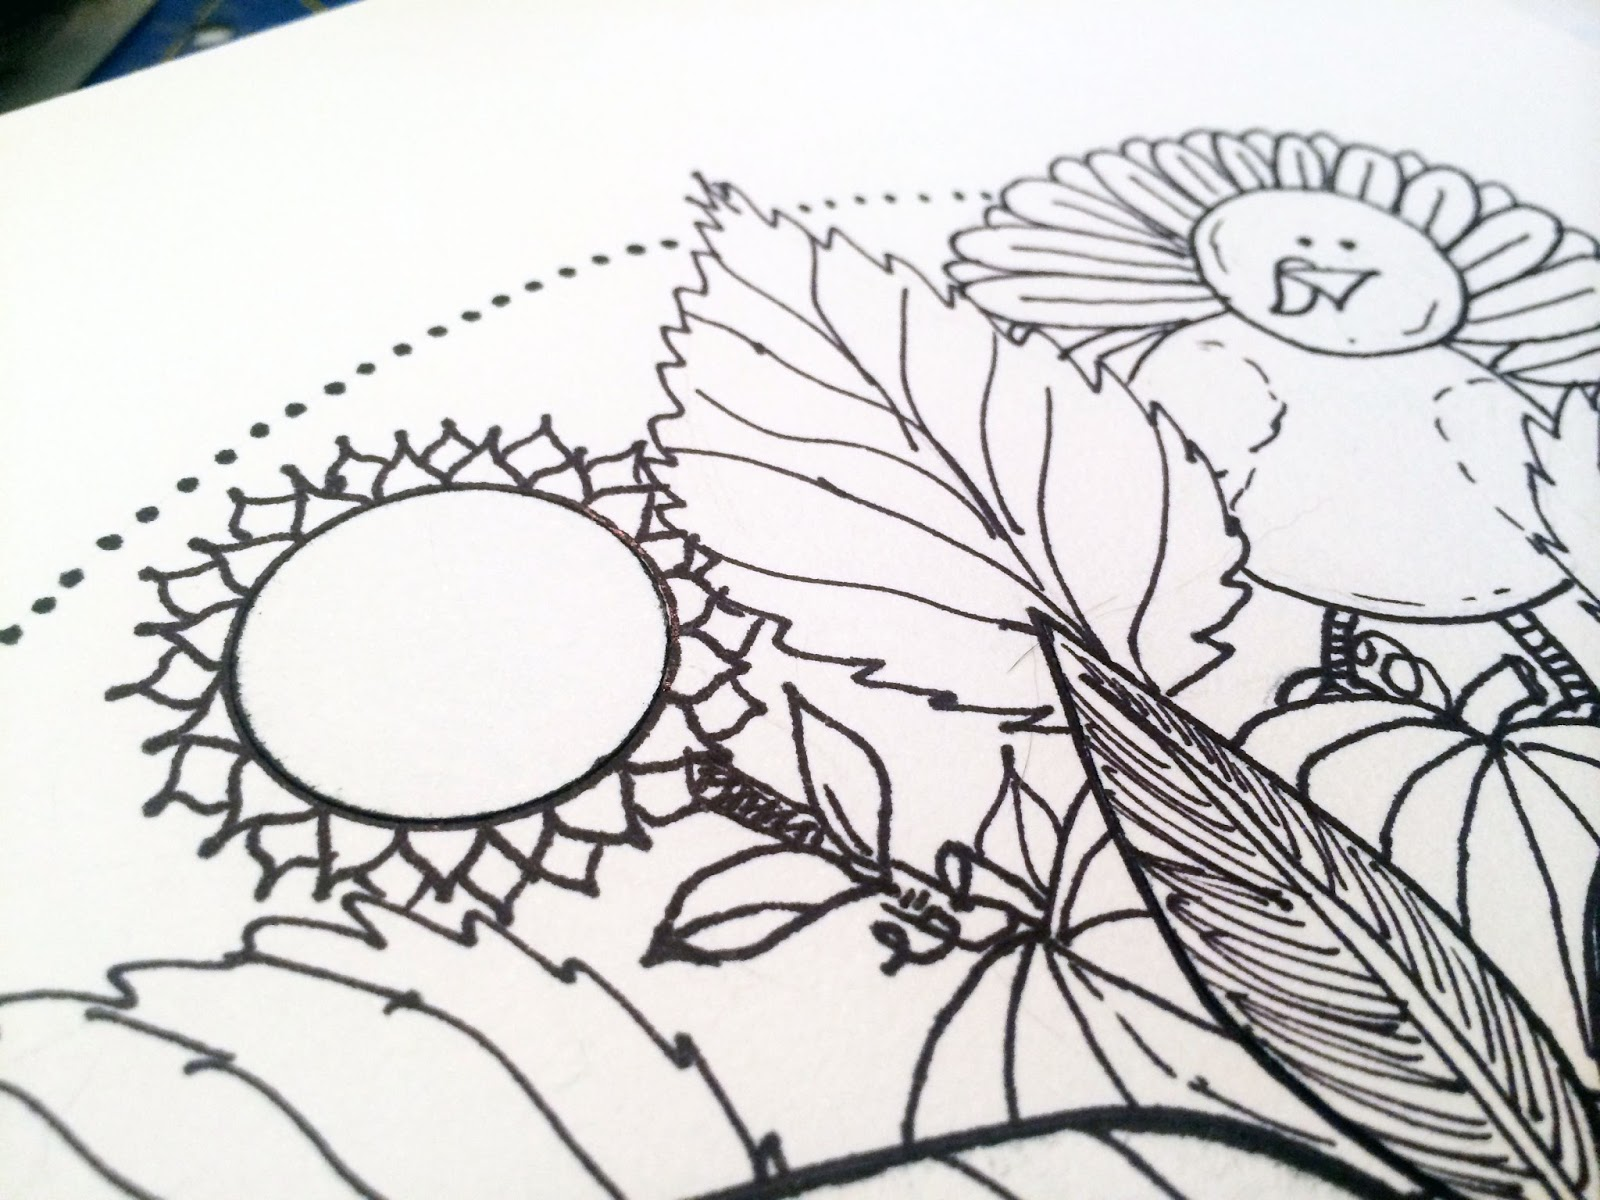 Thanksgiving mandala coloring pages - You Ll Notice As You Color That My Lines Are Not Perfect You Ll Notice A Few Lines That Could Have Been Smoother But Honestly This Is The Thing I Love